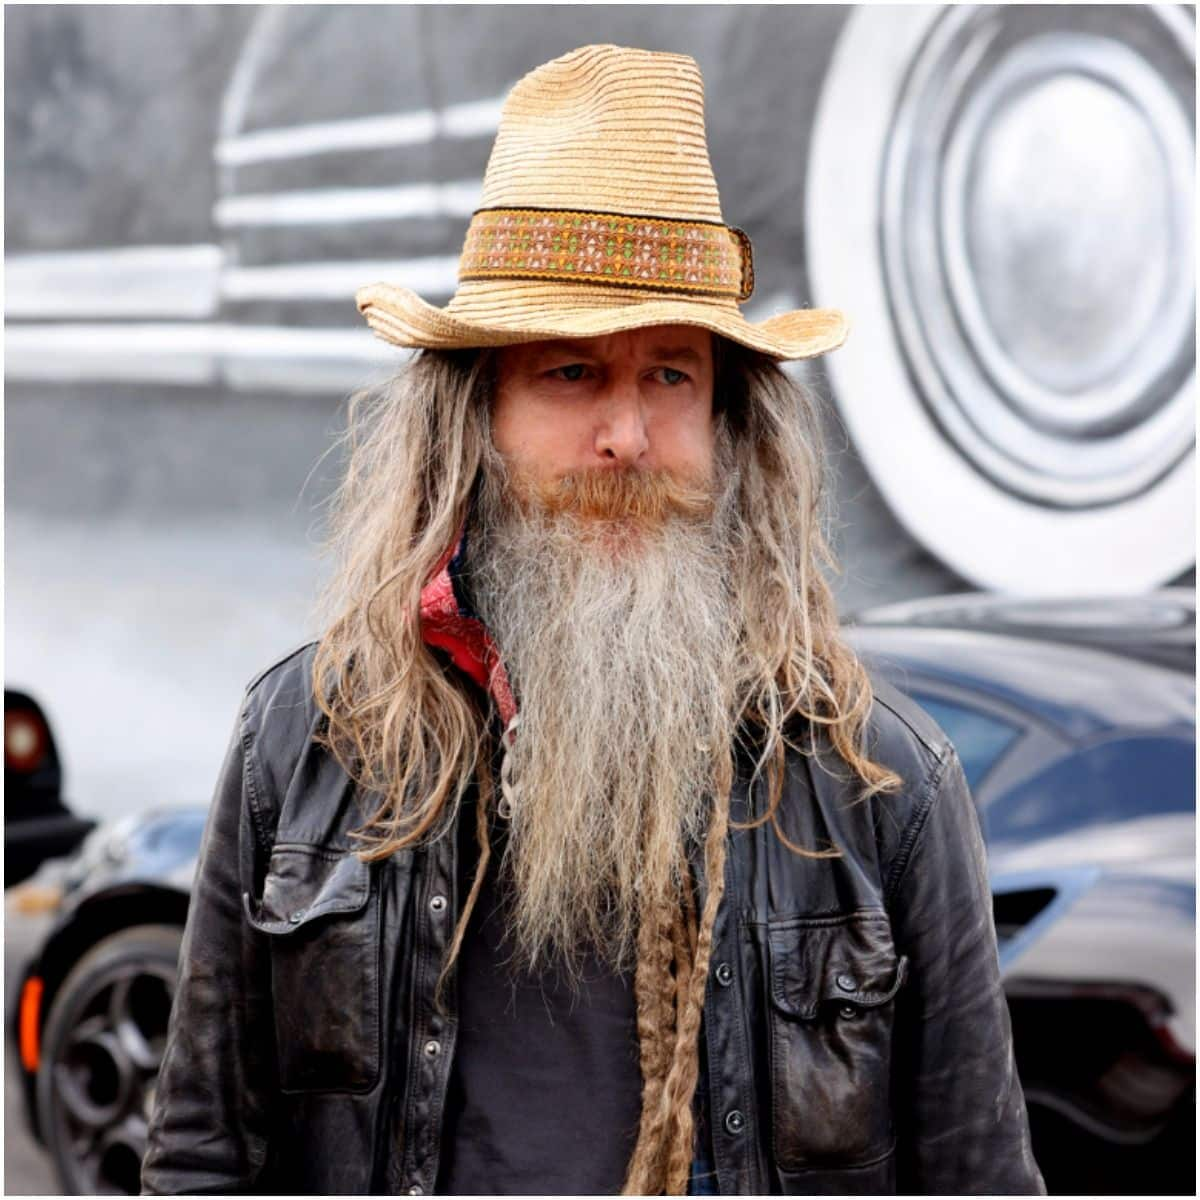 what is the net worth of Magnus Walker